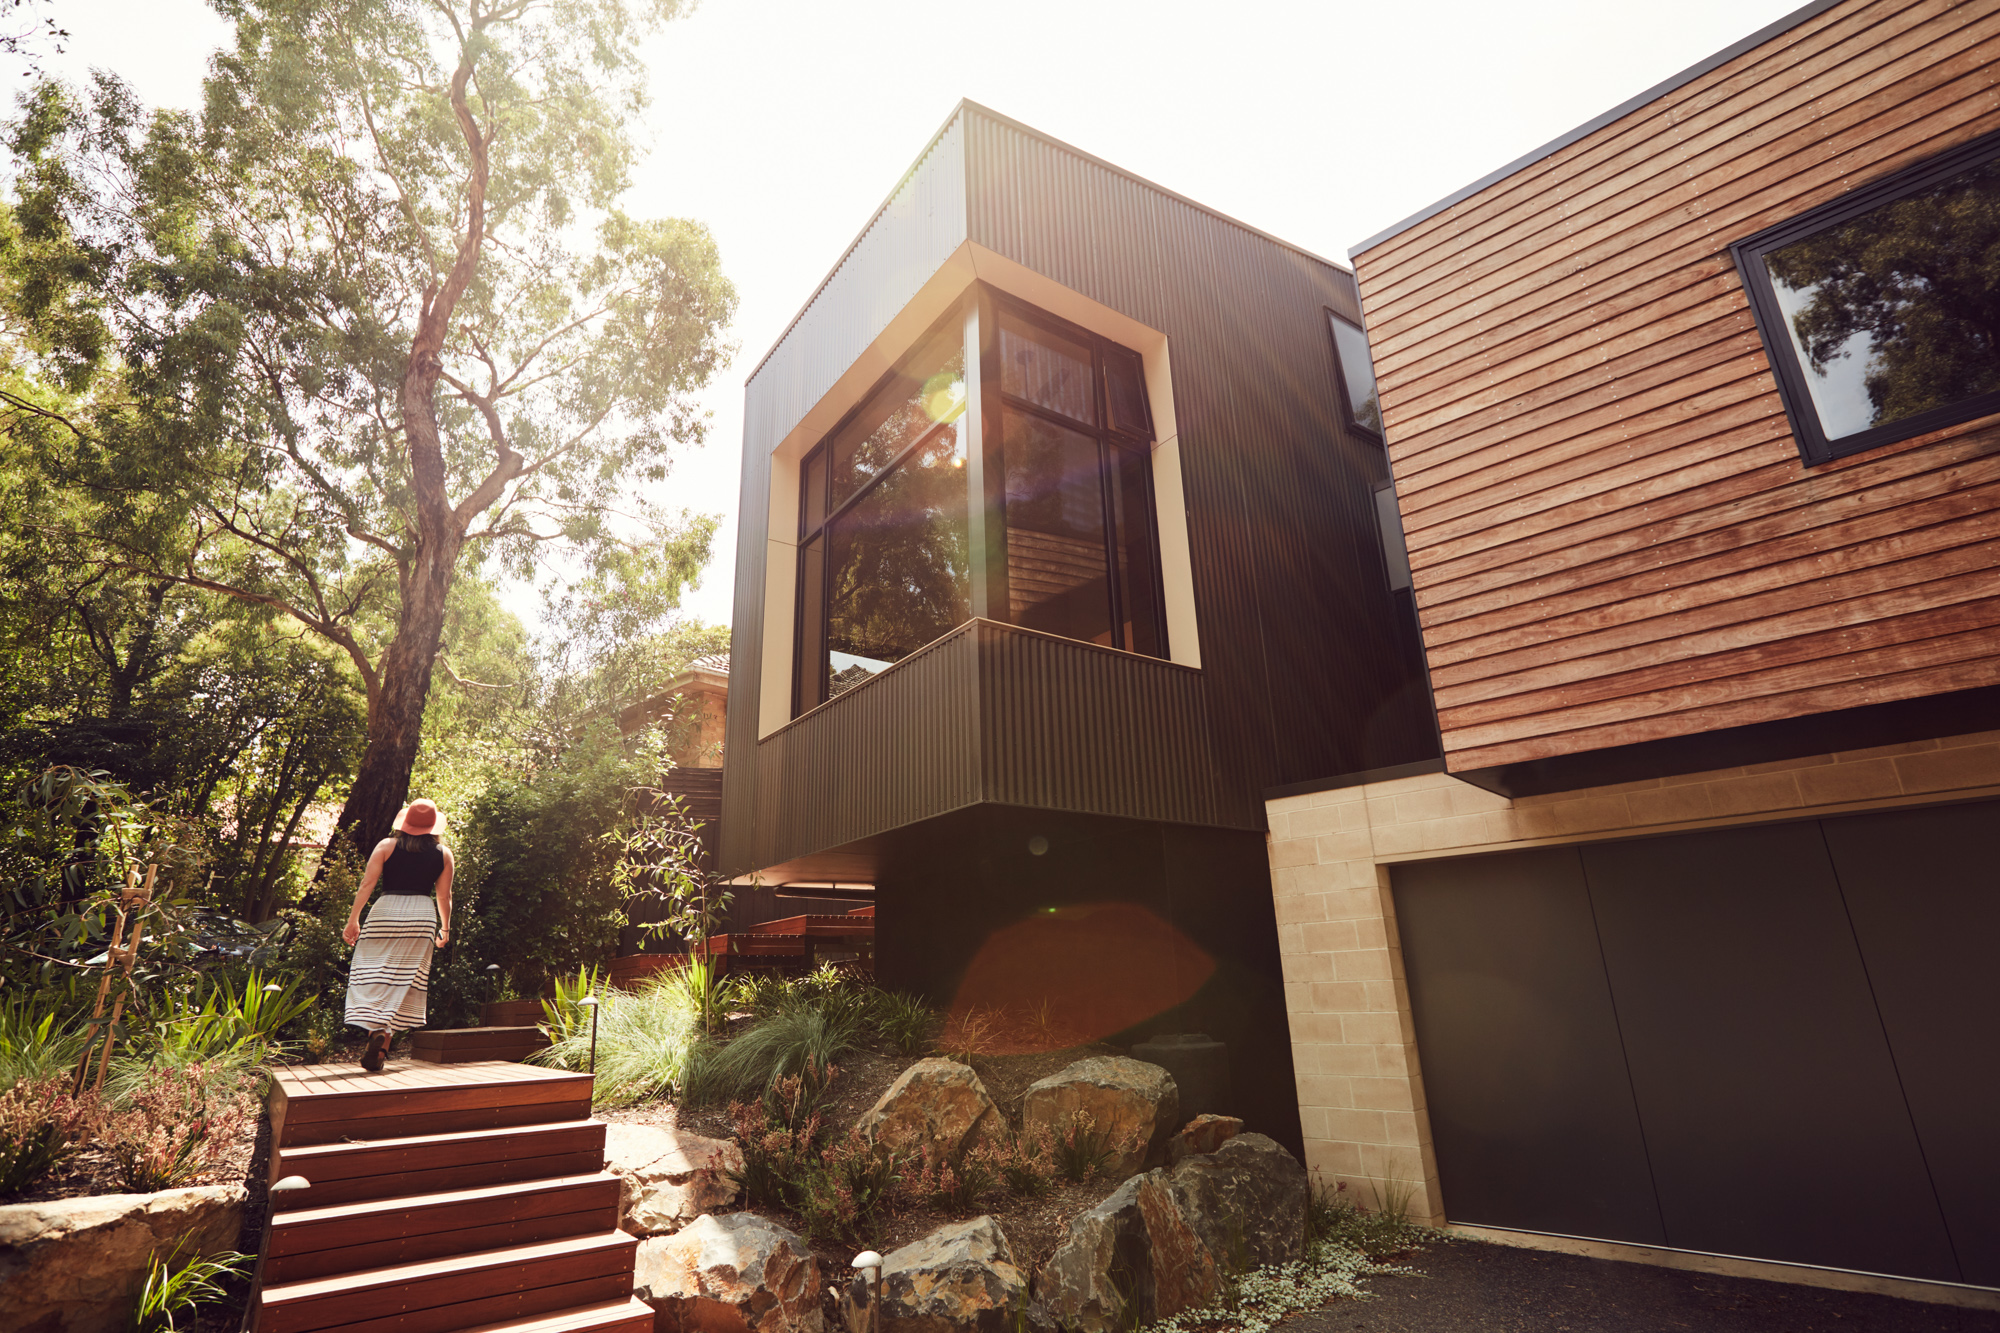 Gallery Of Blackburn House By Archiblox Local Australian Modular Architecture & Interiors Blackburn, Vic Image 8